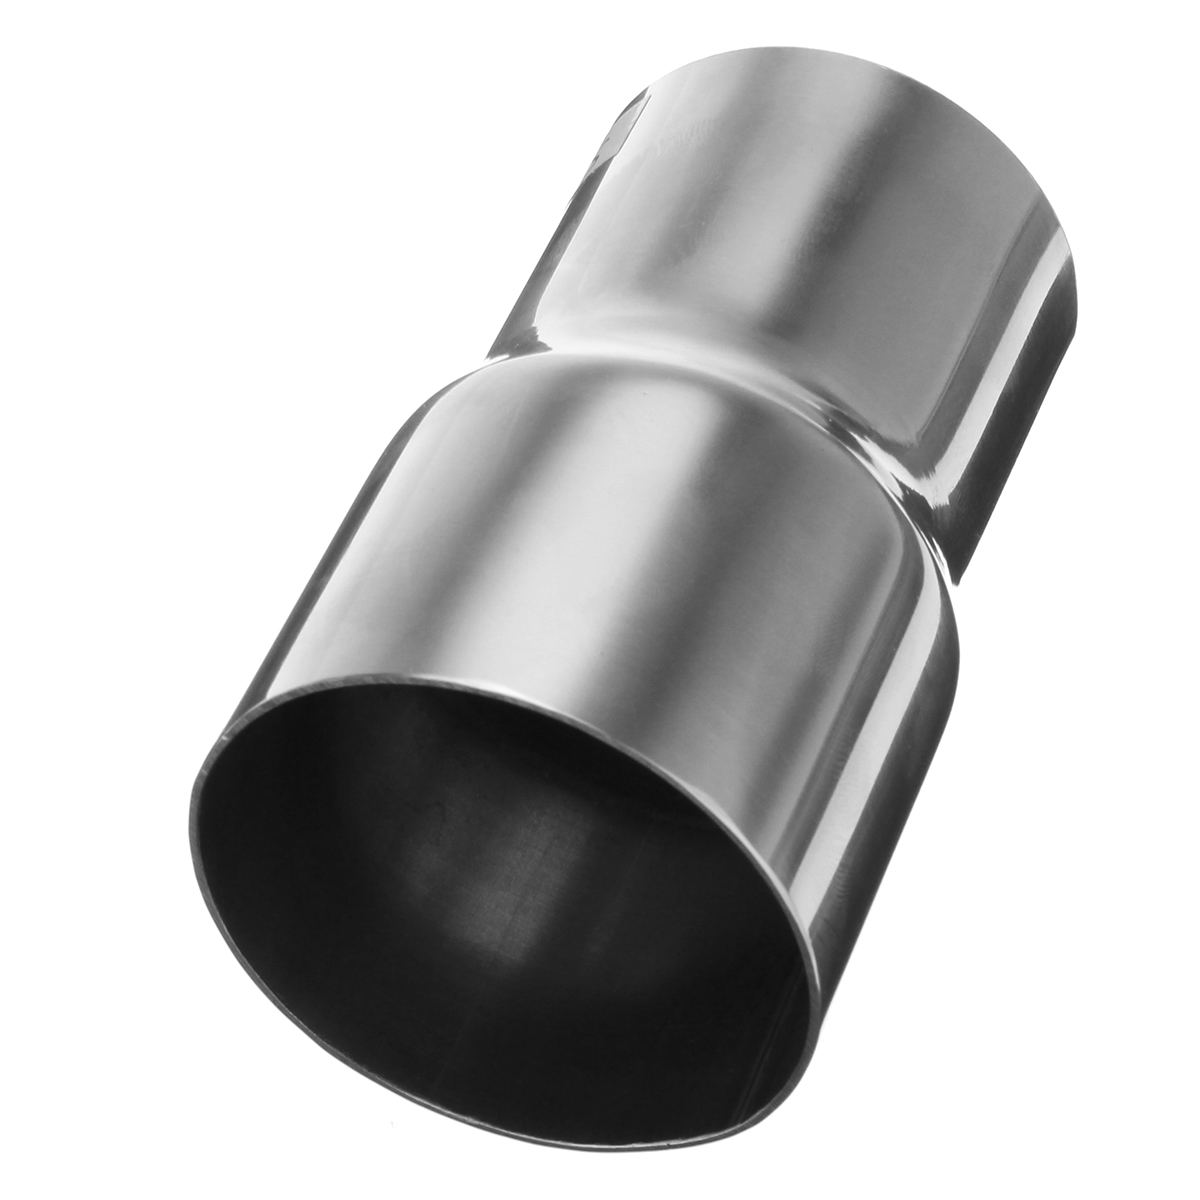 6 Size Universal Car Stainless Steel Standard Exhaust Reducer Connector Pipe Tube 76mm 63mm 60mm To 63mm 57mm 52mm 50mm